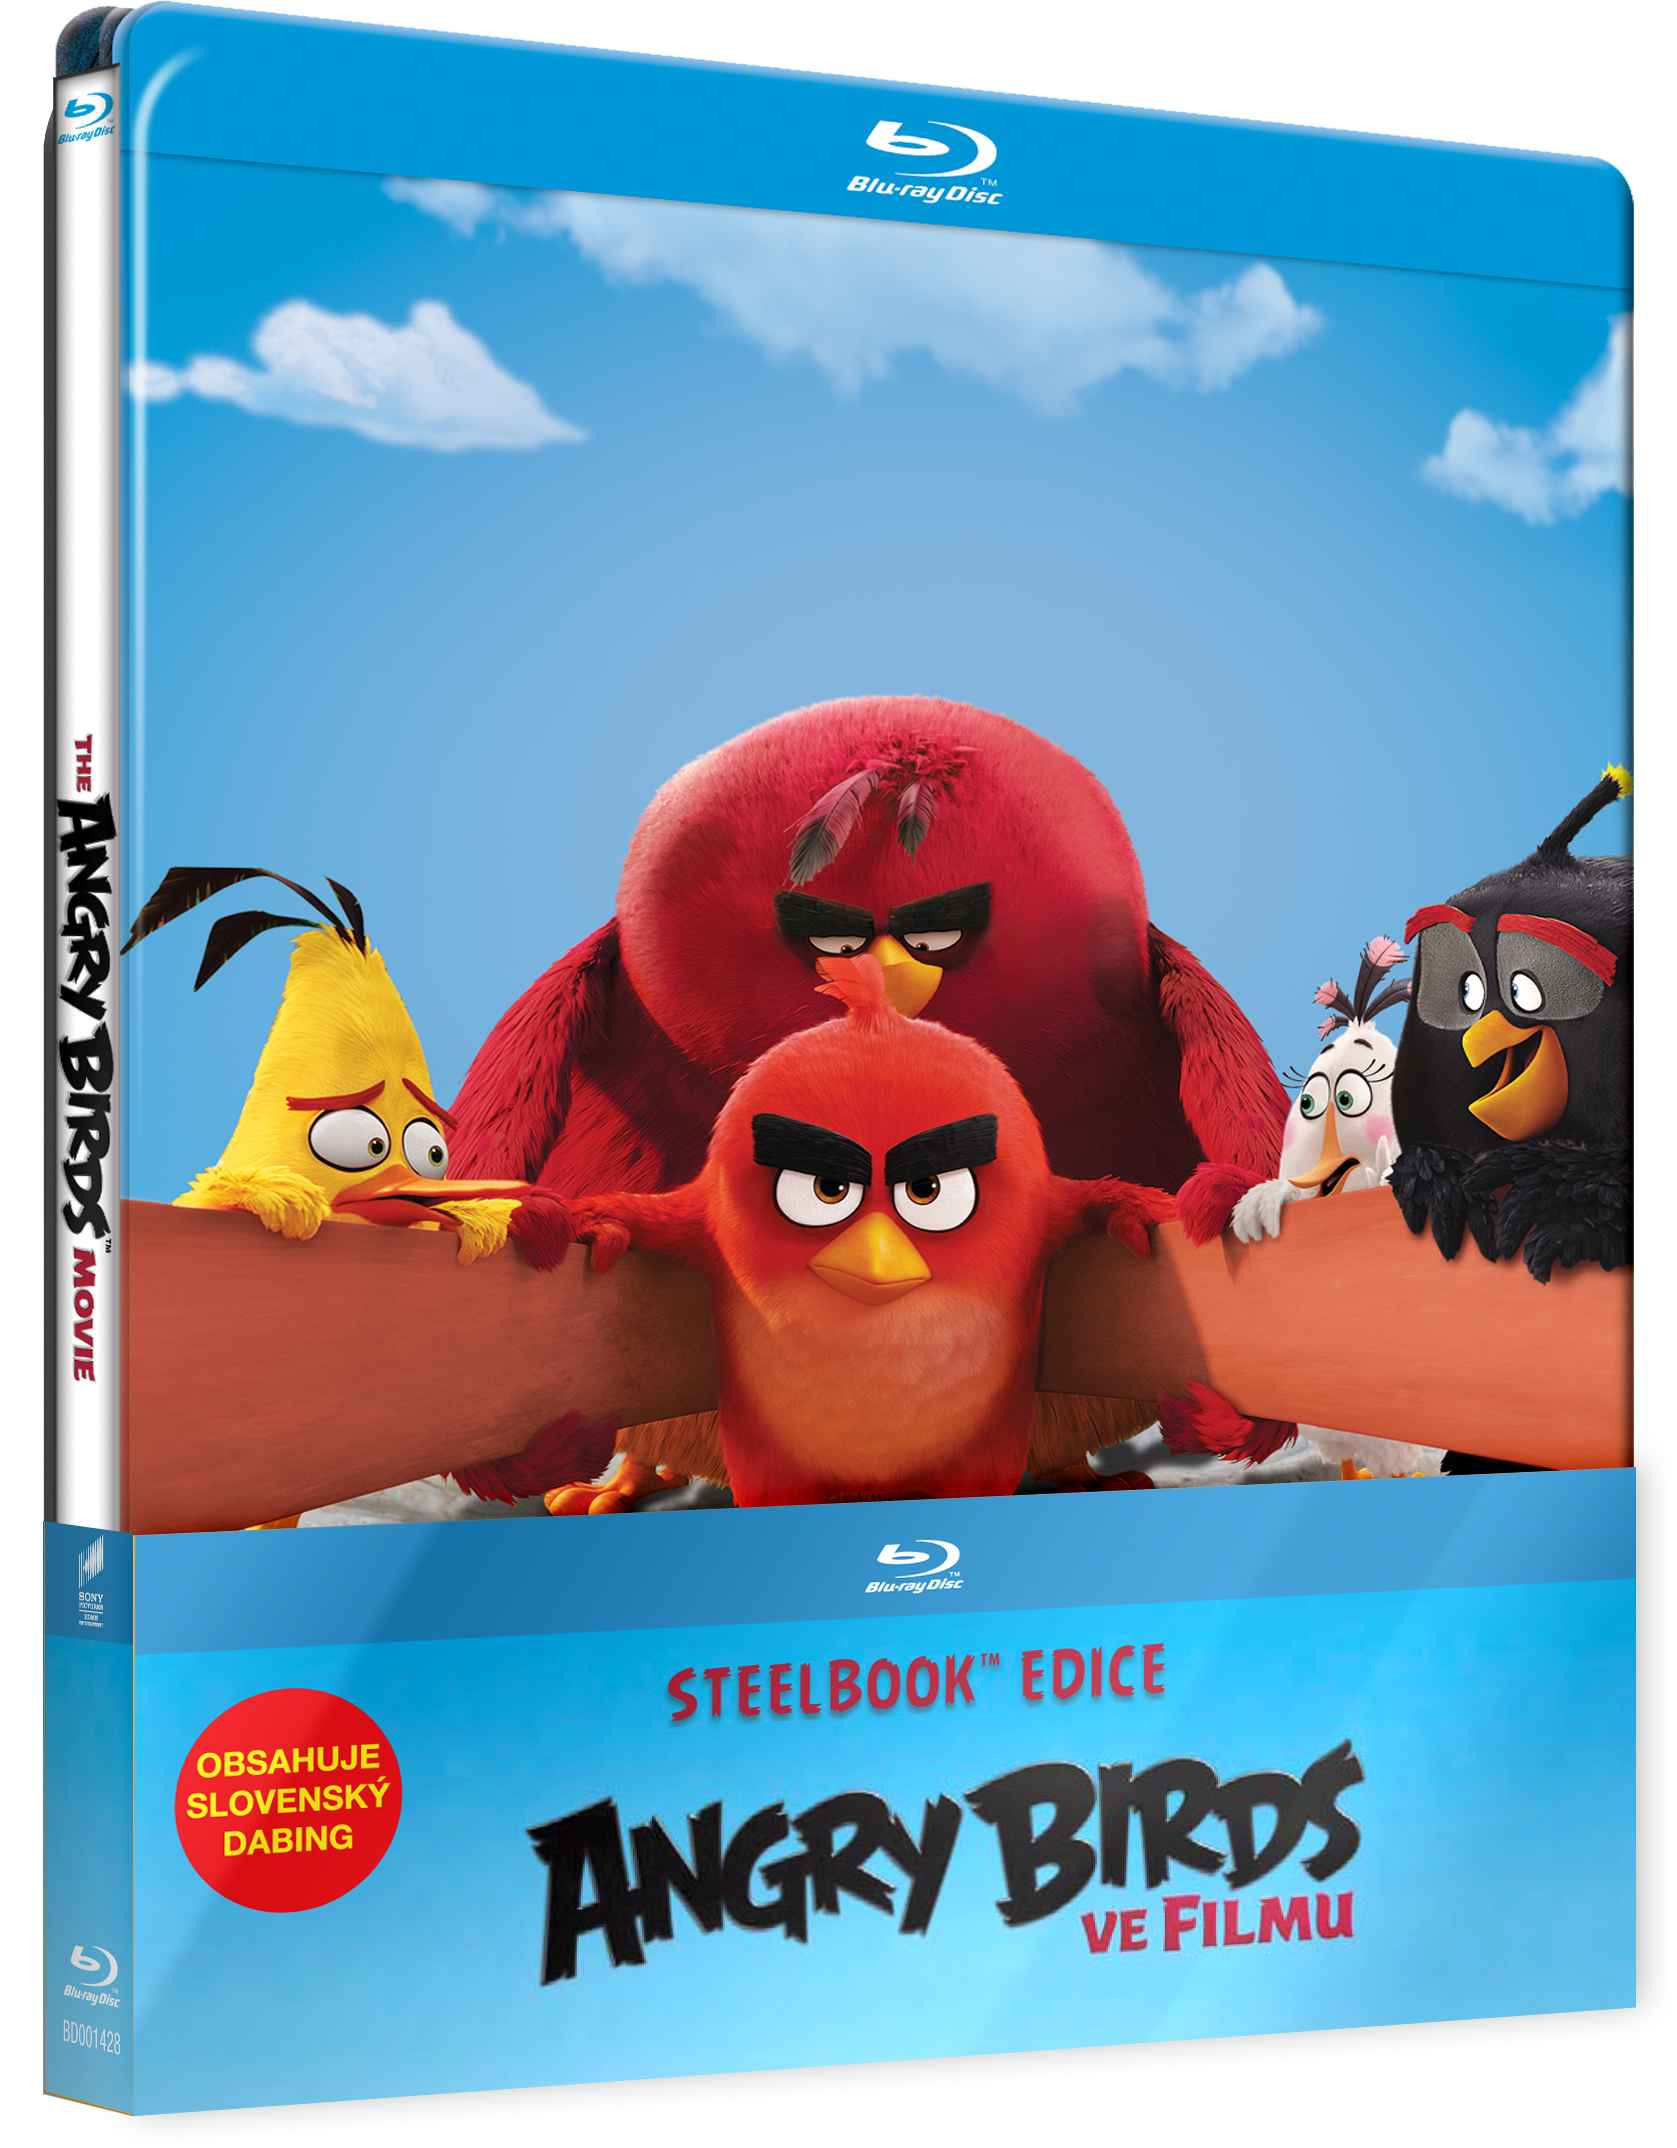 ANGRY BIRDS VE FILMU (2 BD) - Blu-ray STEELBOOK 3D + 2D